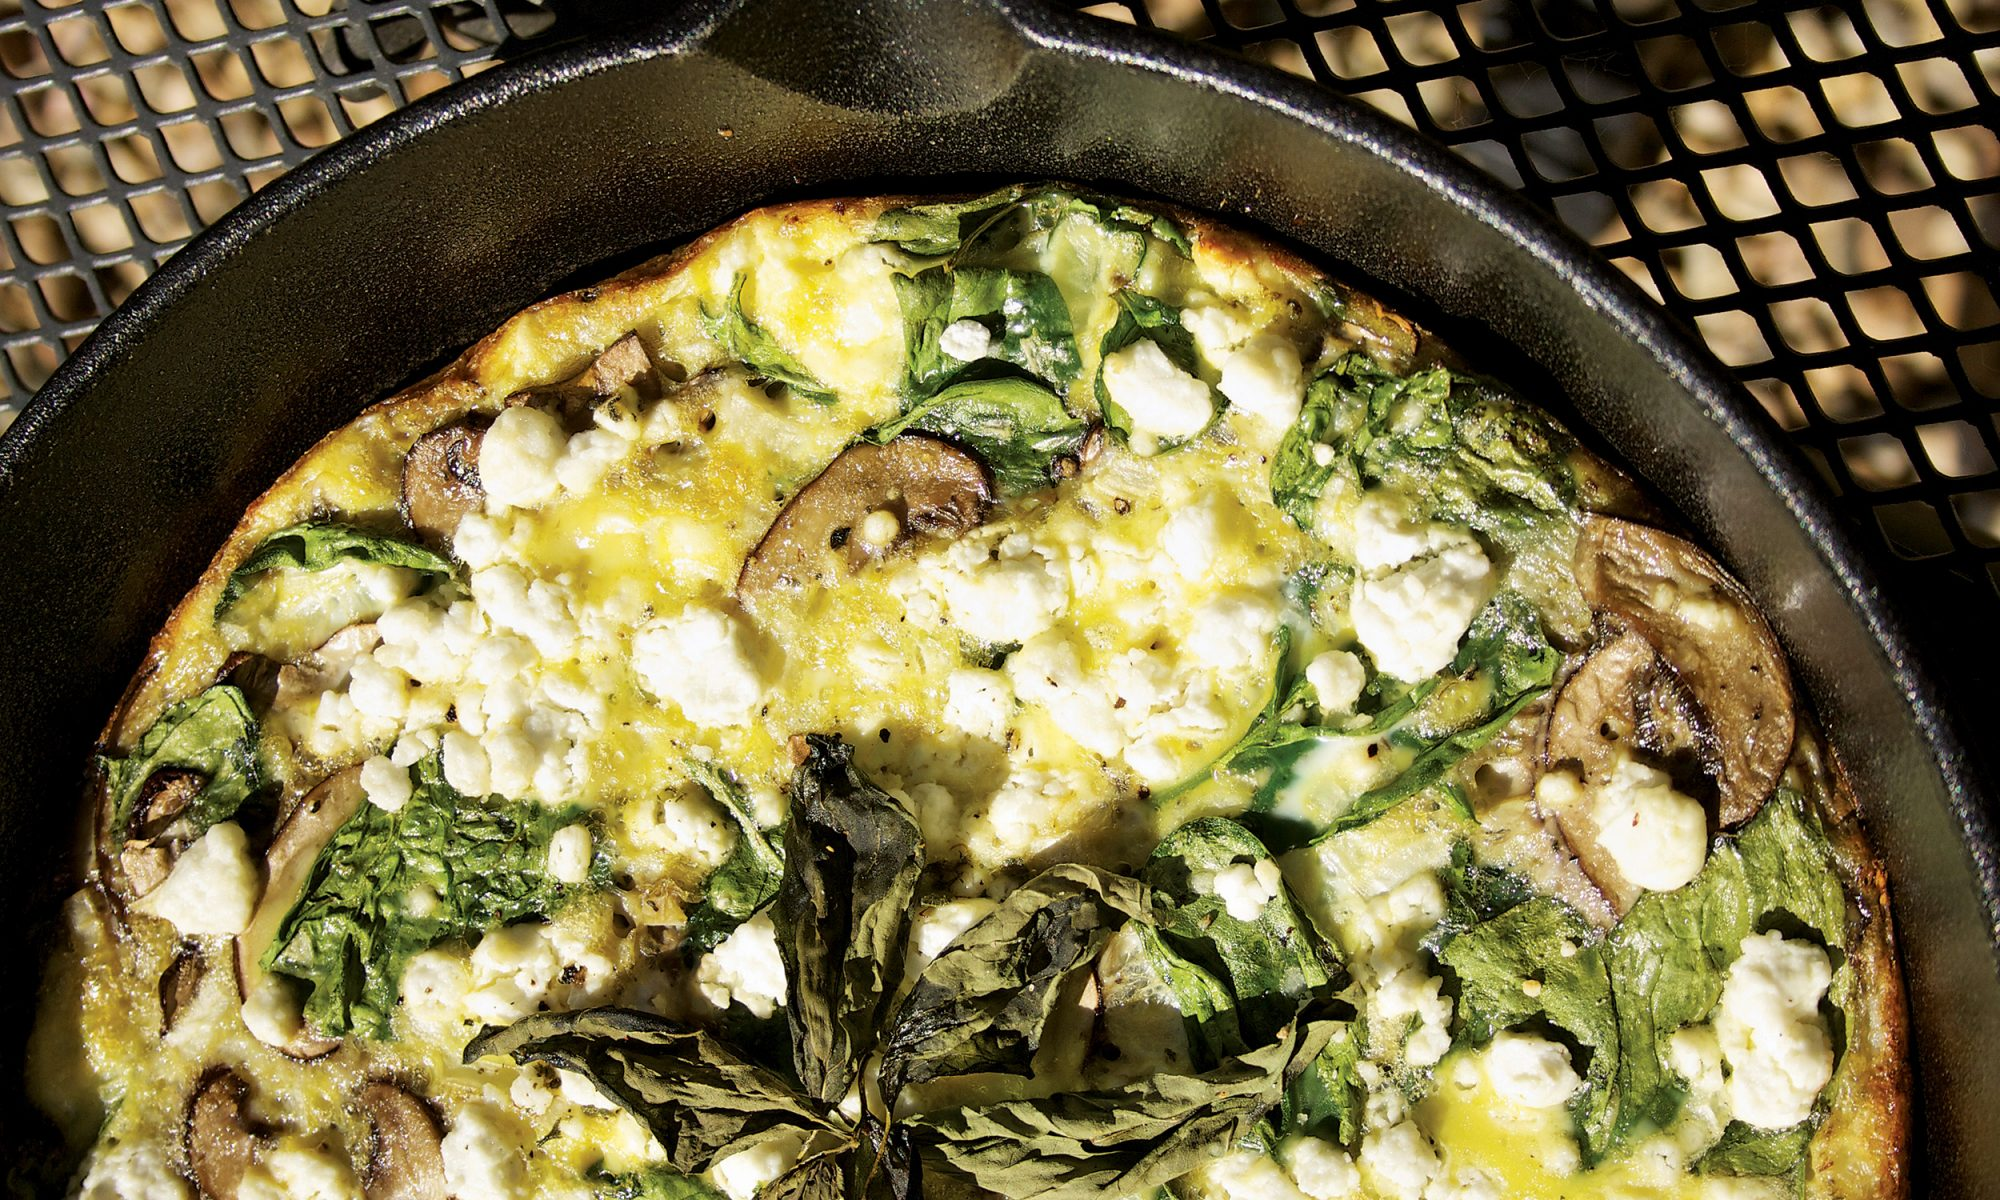 This Cheesy Cannabis Frittata Is Totally Dope